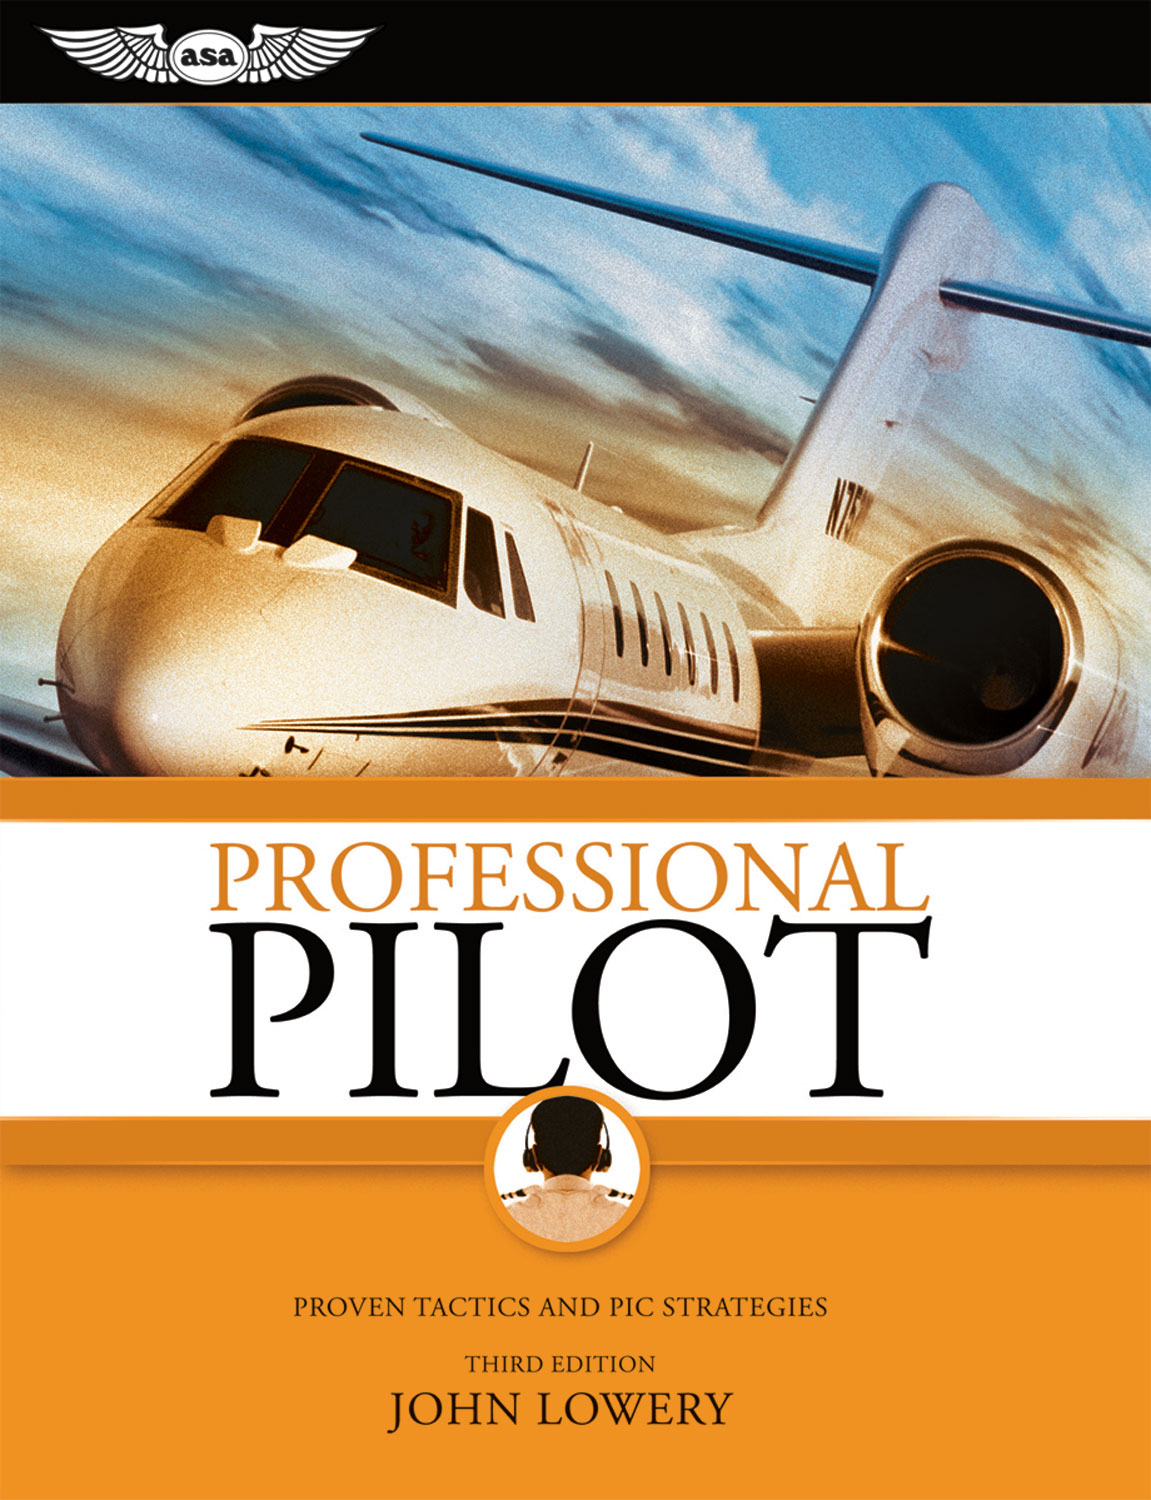 Professional Pilot: Proven Tactics and PIC Strategies